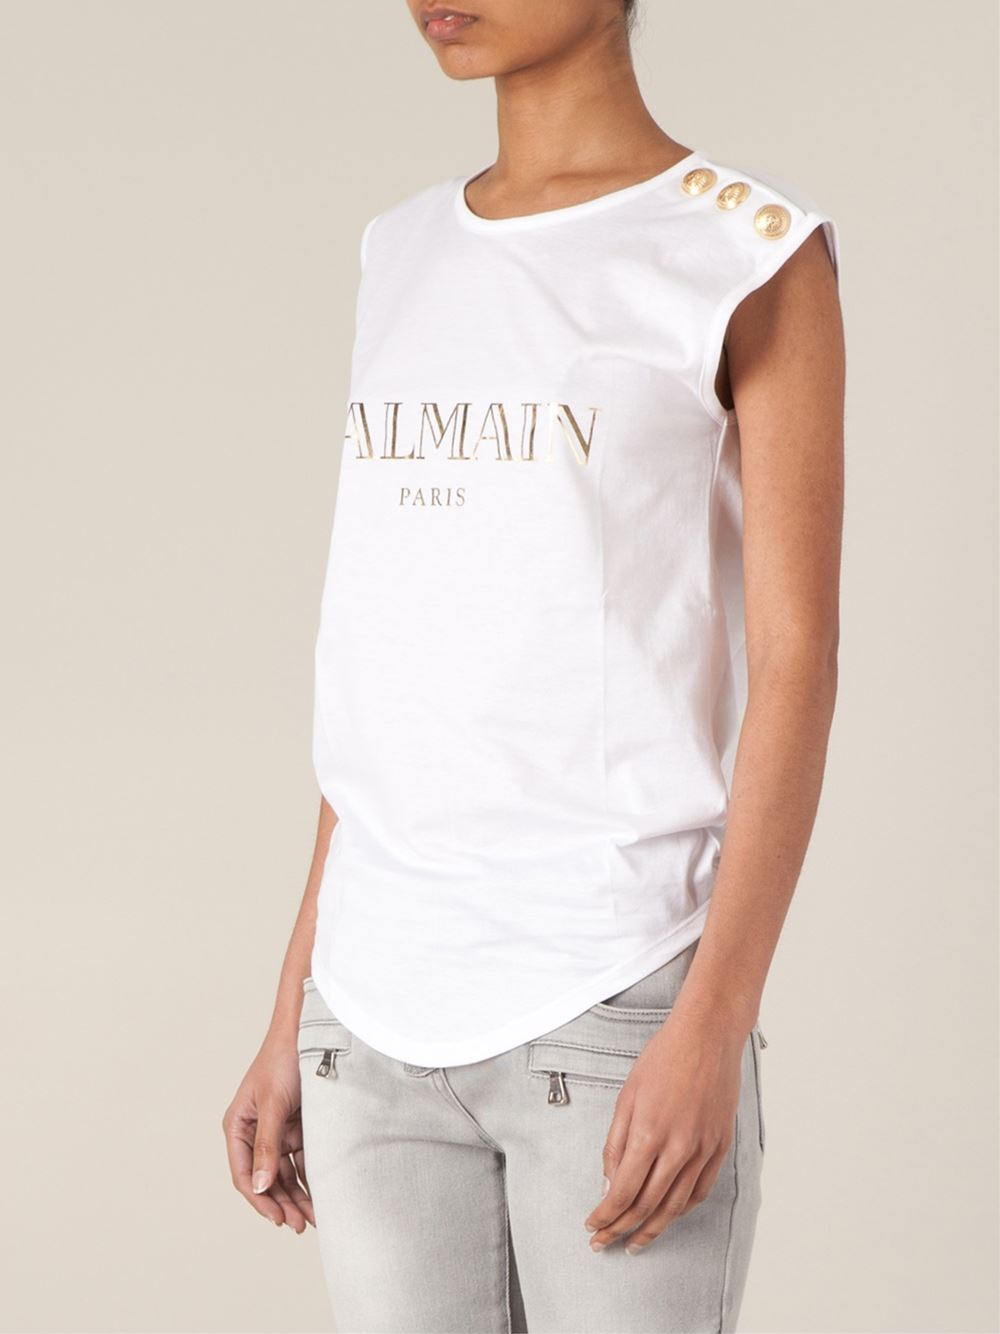 sleveless shirt Balmain Recommend Cheap Price Sale Best Wholesale Free Shipping Fashion Style Shopping Online For Sale QA0nDiokuY